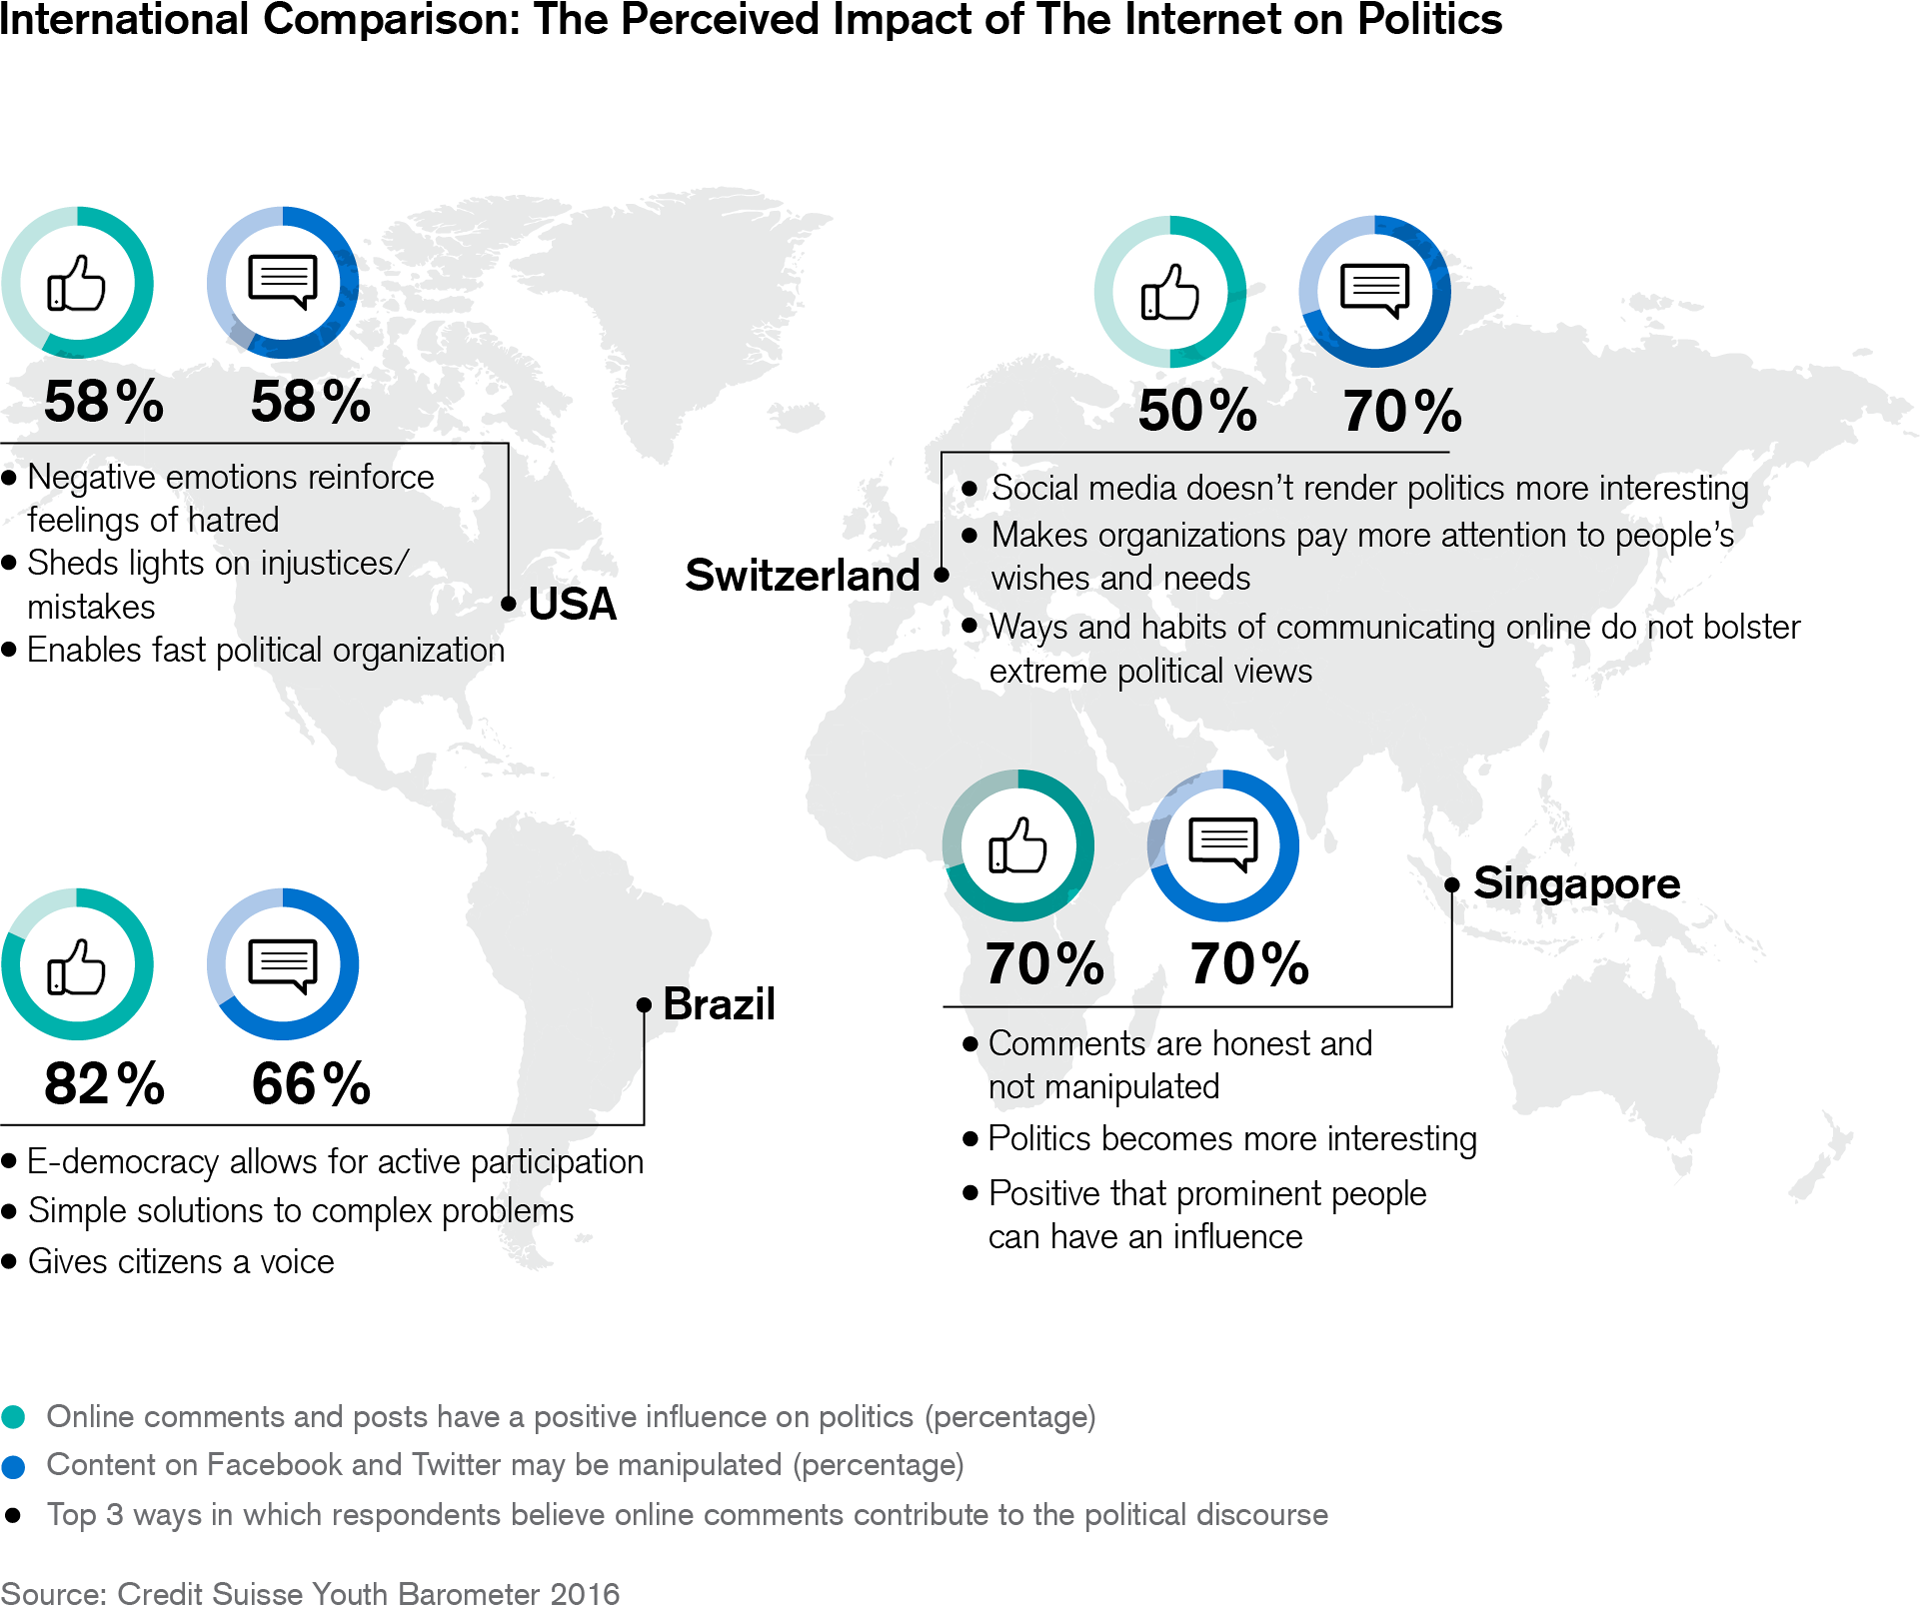 International comparison: the perceived impact of the internet on politics